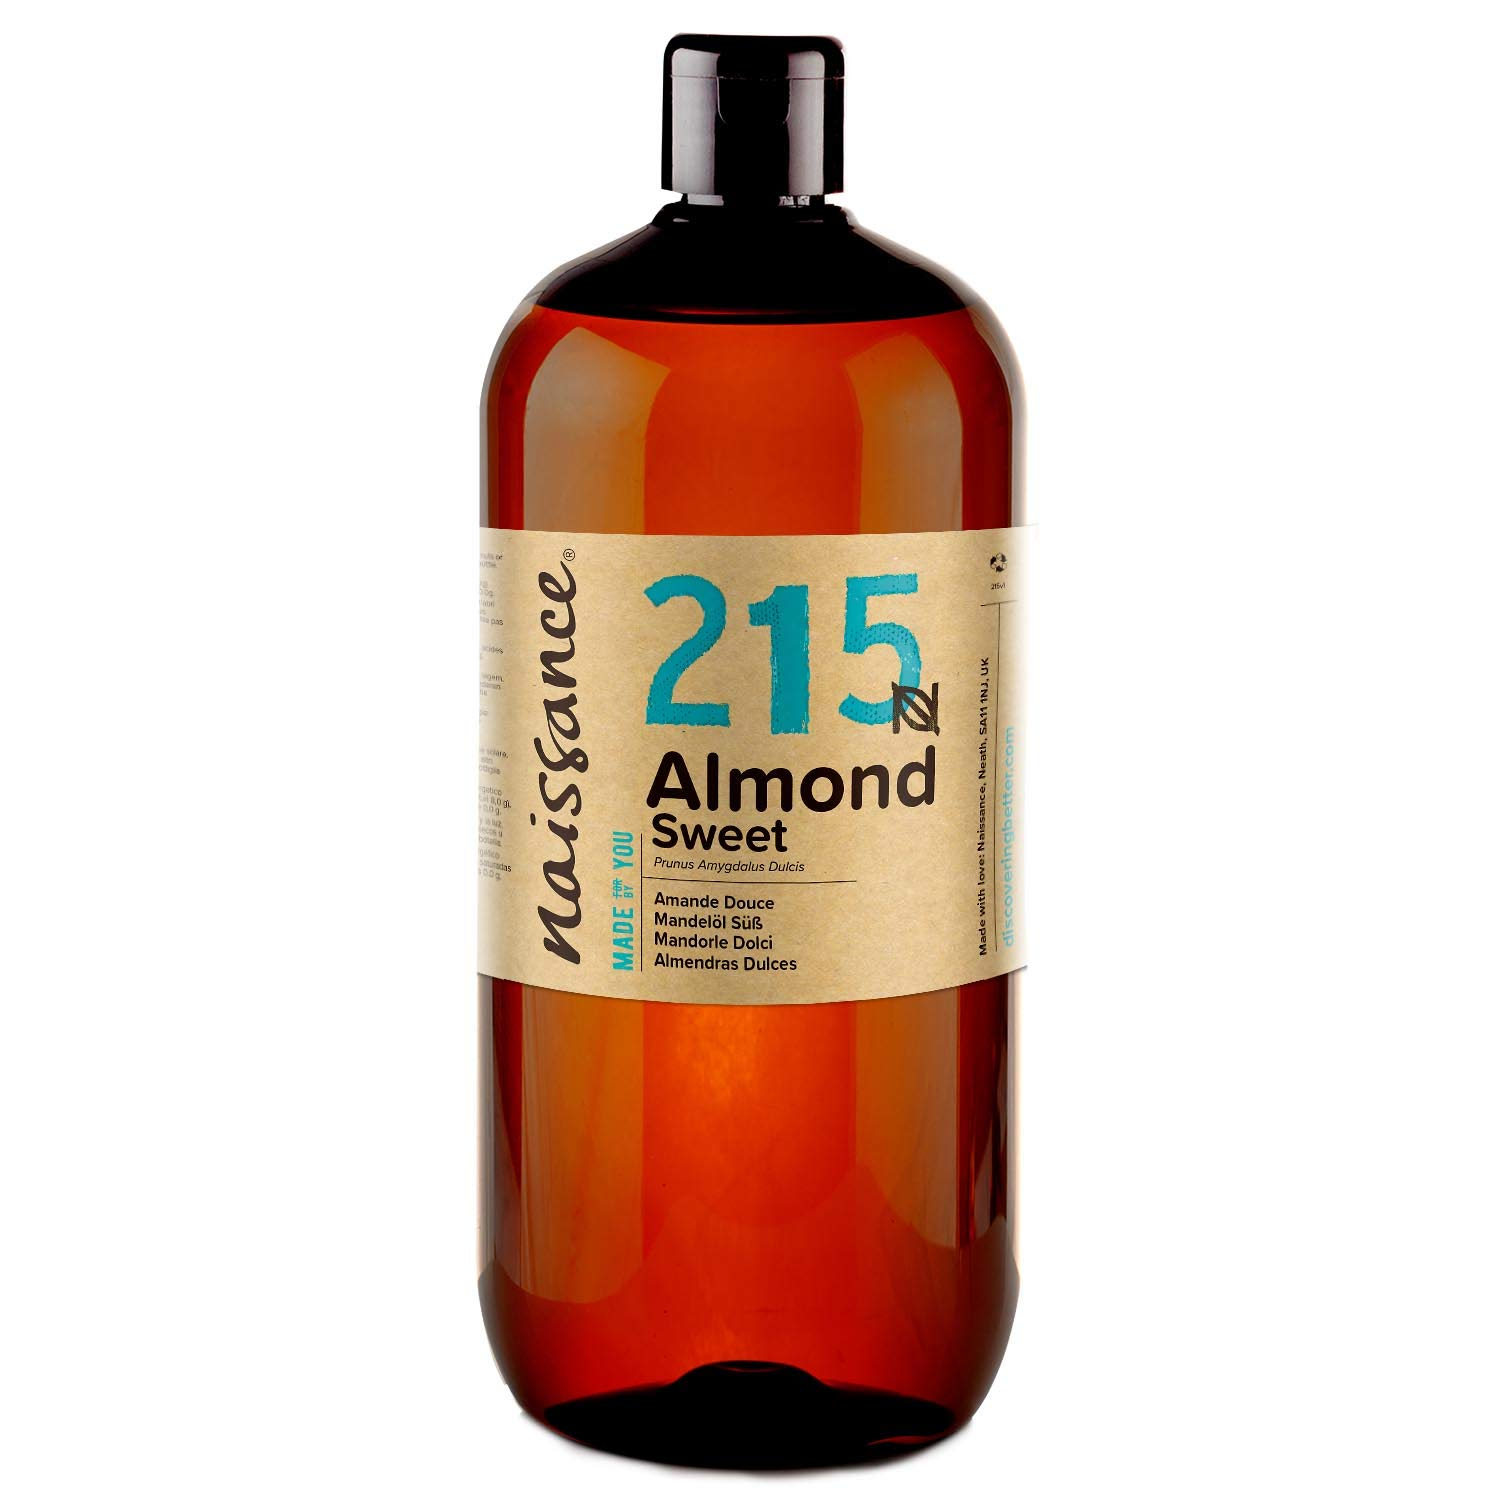 Naissance Sweet Almond Oil 32 fl oz - Pure & Natural, Vegan, Non GMO, Hexane Free, Cruelty Free - Ideal for Haircare and Skincare, Aromatherapy & Massage